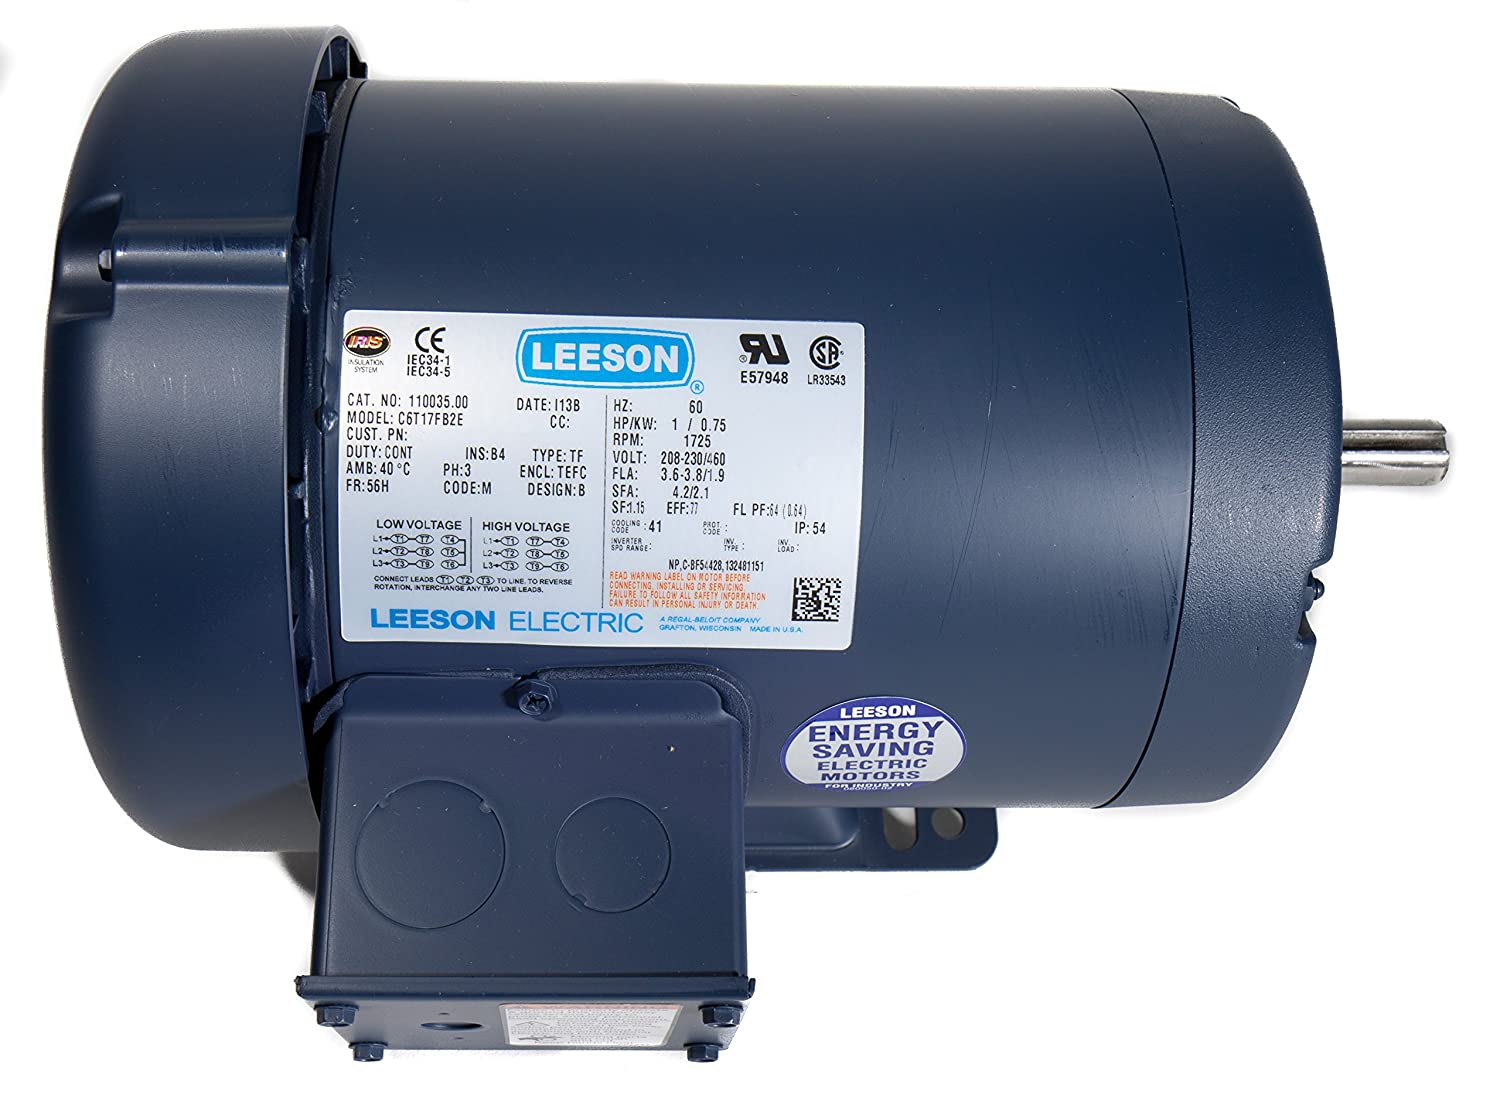 Leeson 113029.00 Jet Pump Motor Rigid Mounting 56J Frame 3600 RPM 1HP 3 Phase 208-230//460V Voltage 60Hz Fequency C6T34FK35 E